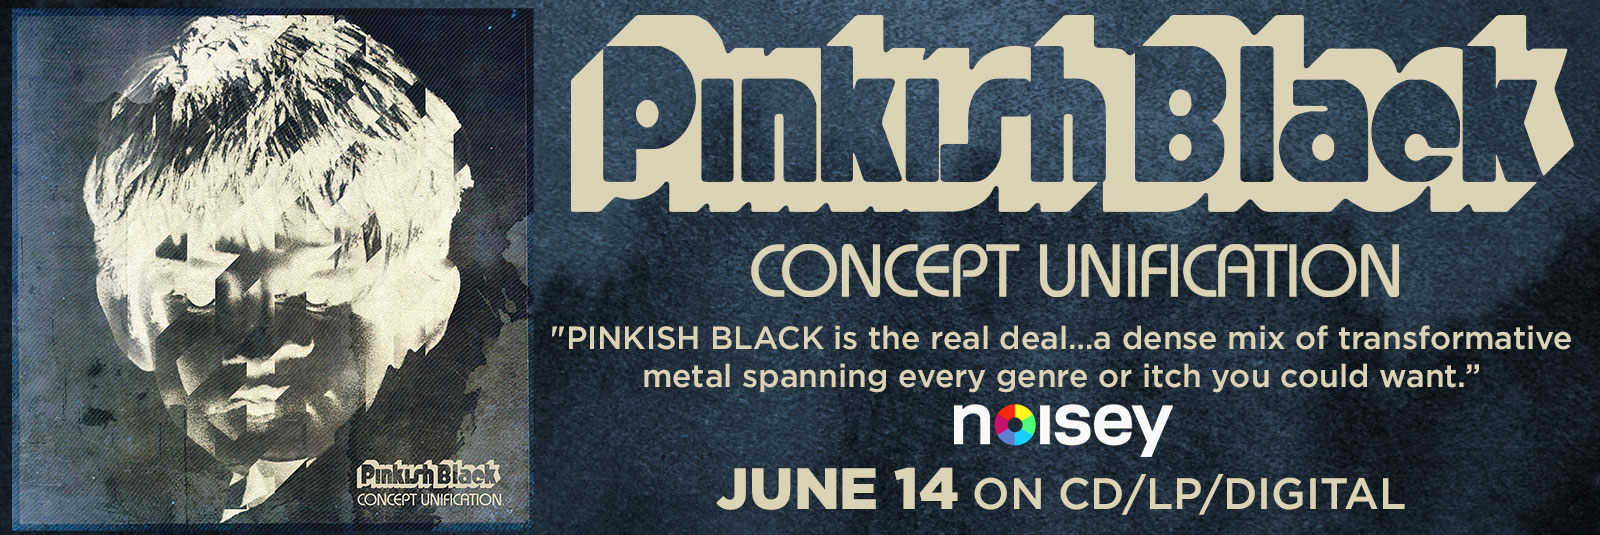 pinkish-black-concept-unification-doom-rock-synth-june-14